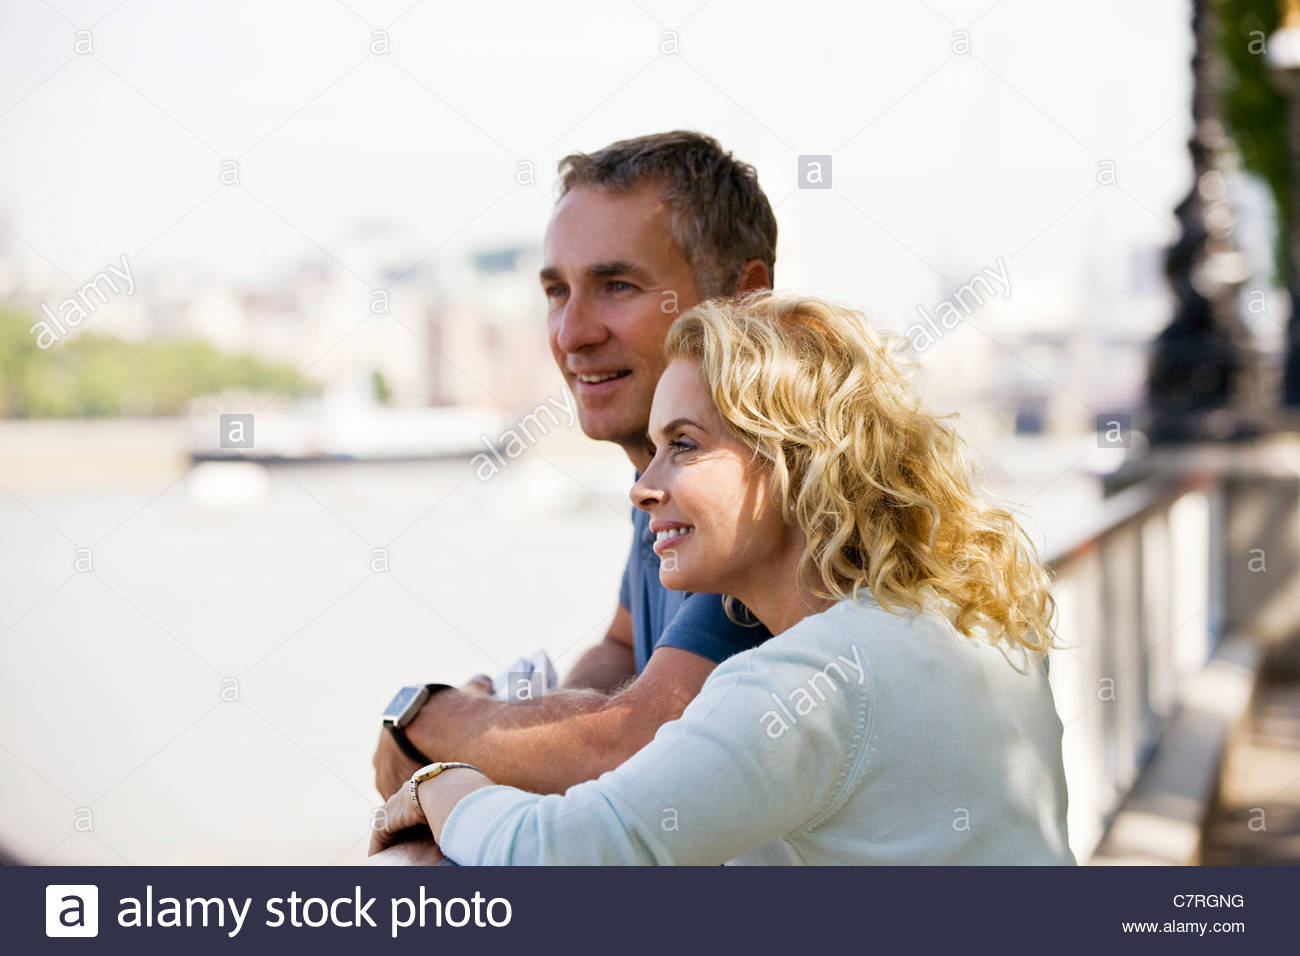 A middle-aged couple standing next to the river Thames, admiring the view - Stock Image